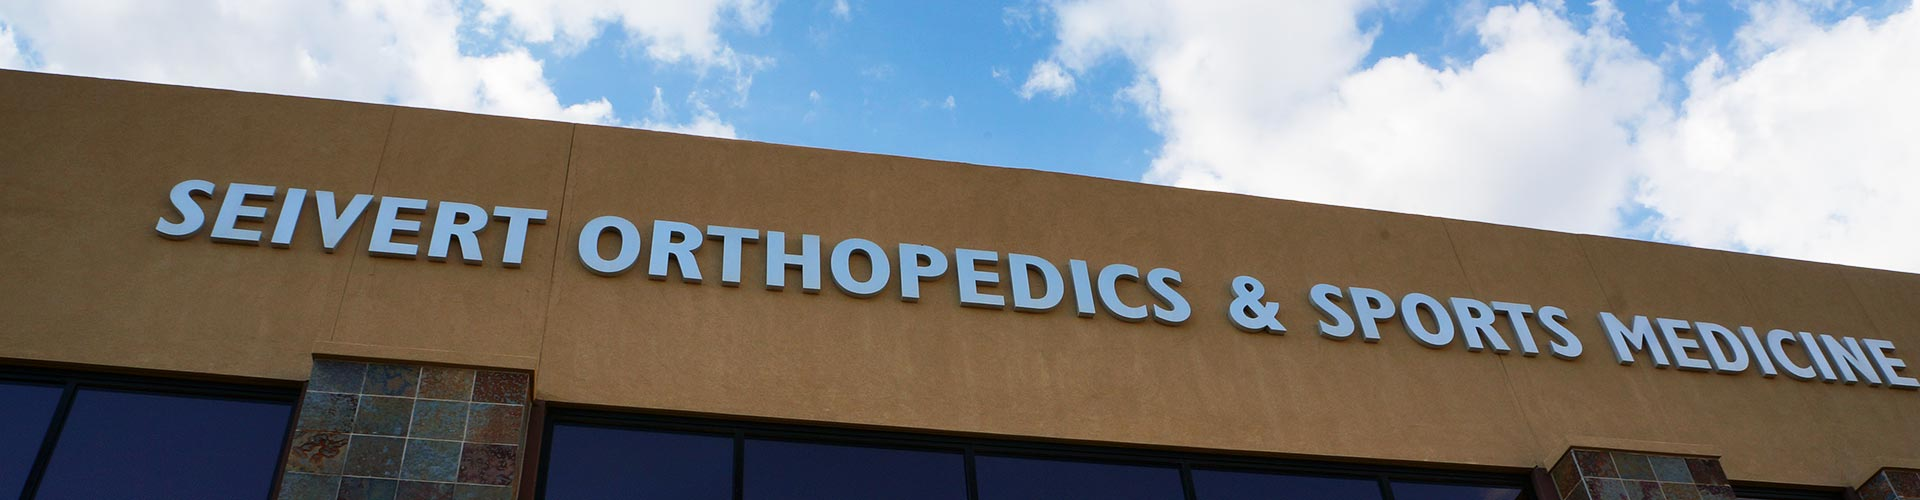 Orthopedic Surgeon Scottsdale AZ